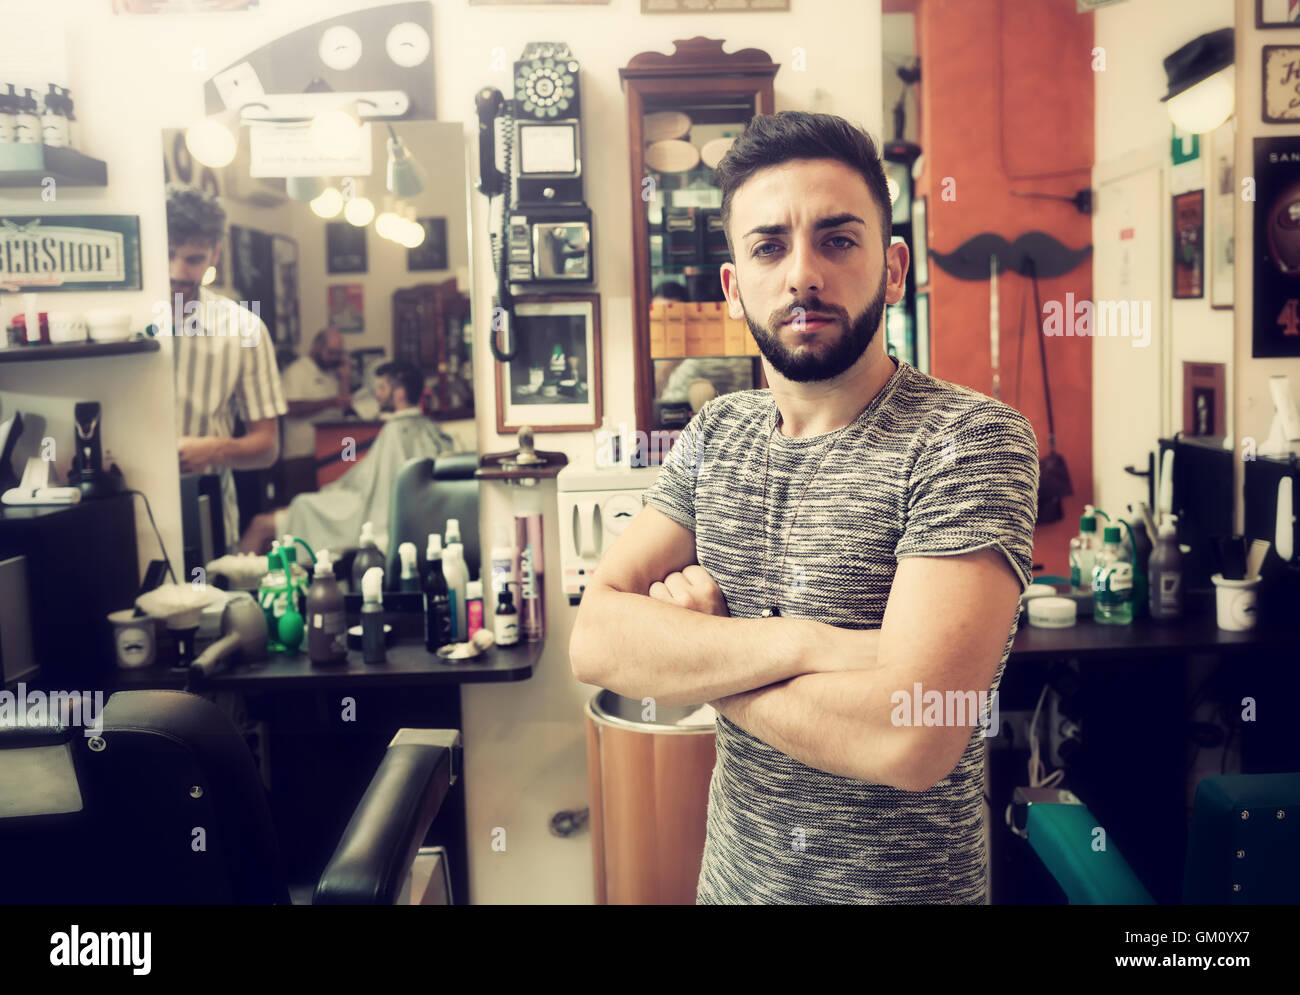 Traditional ritual of shaving the beard in a old style barber shop. - Stock Image